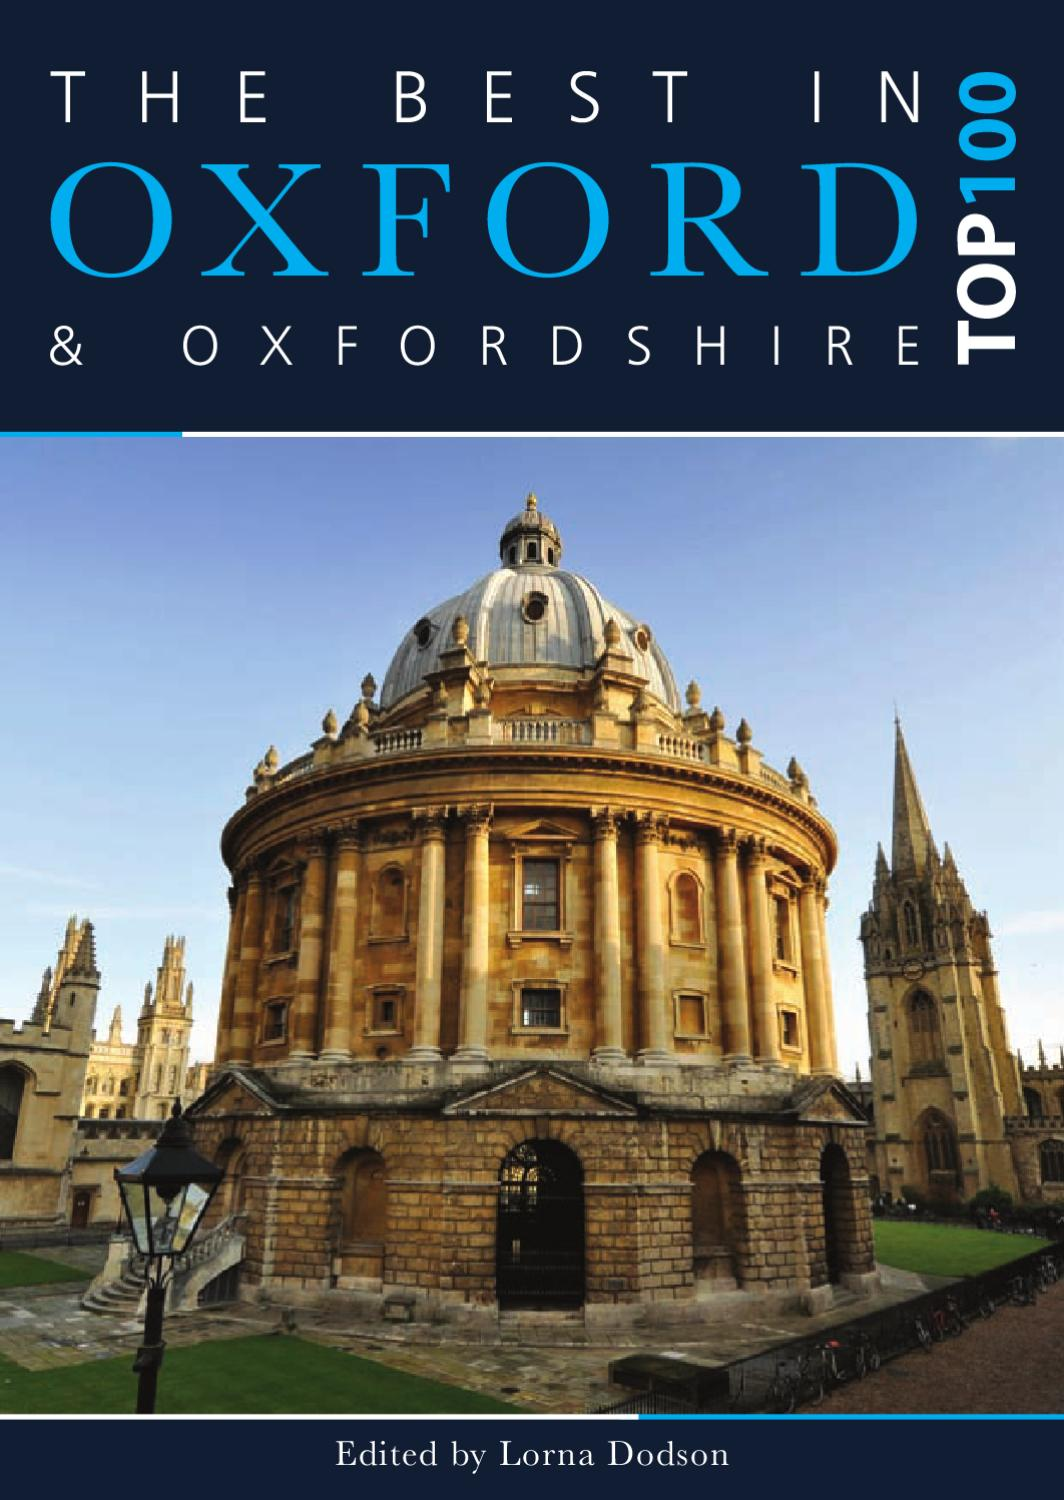 Best In Oxford 2012 Top 100 by In Oxford - issuu